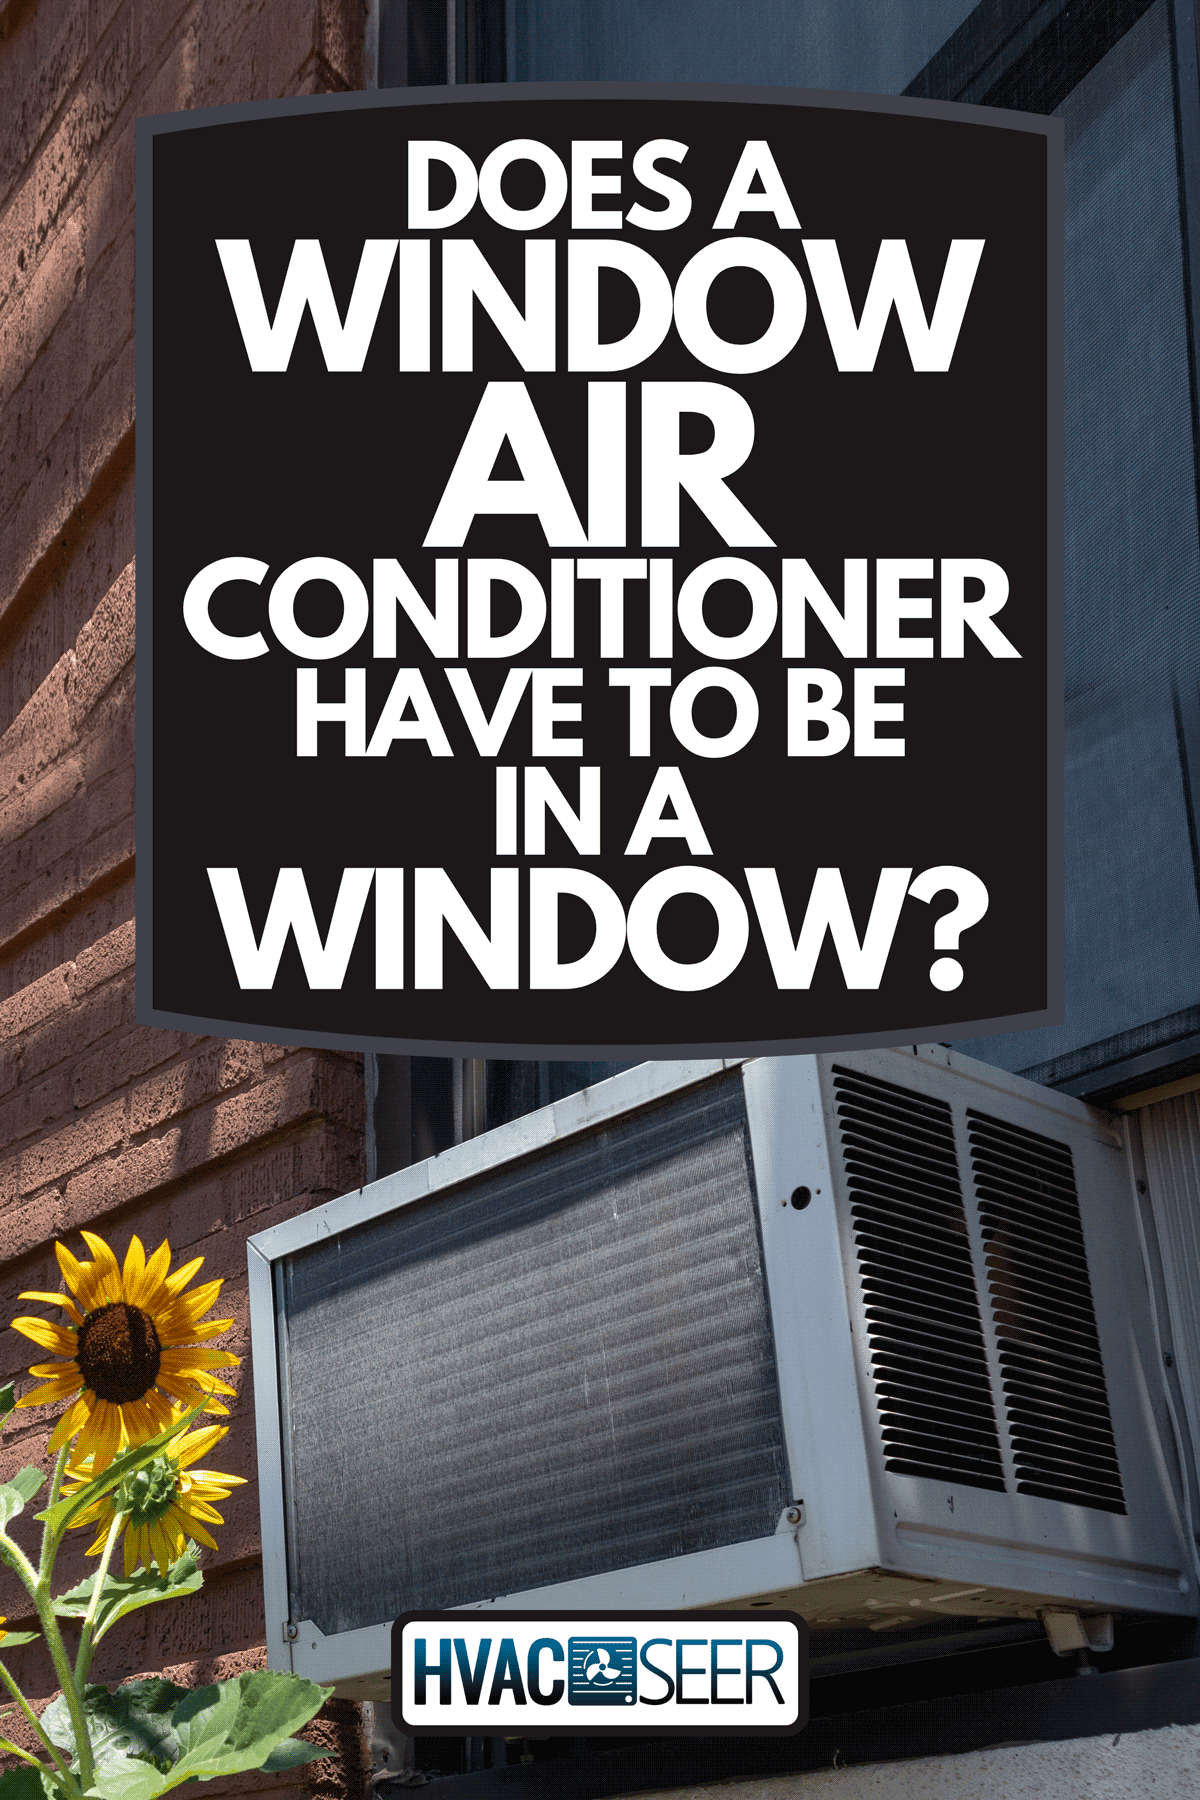 Window air conditioning unit outside an old brick apartment building, Does A Window Air Conditioner Have To Be In A Window?